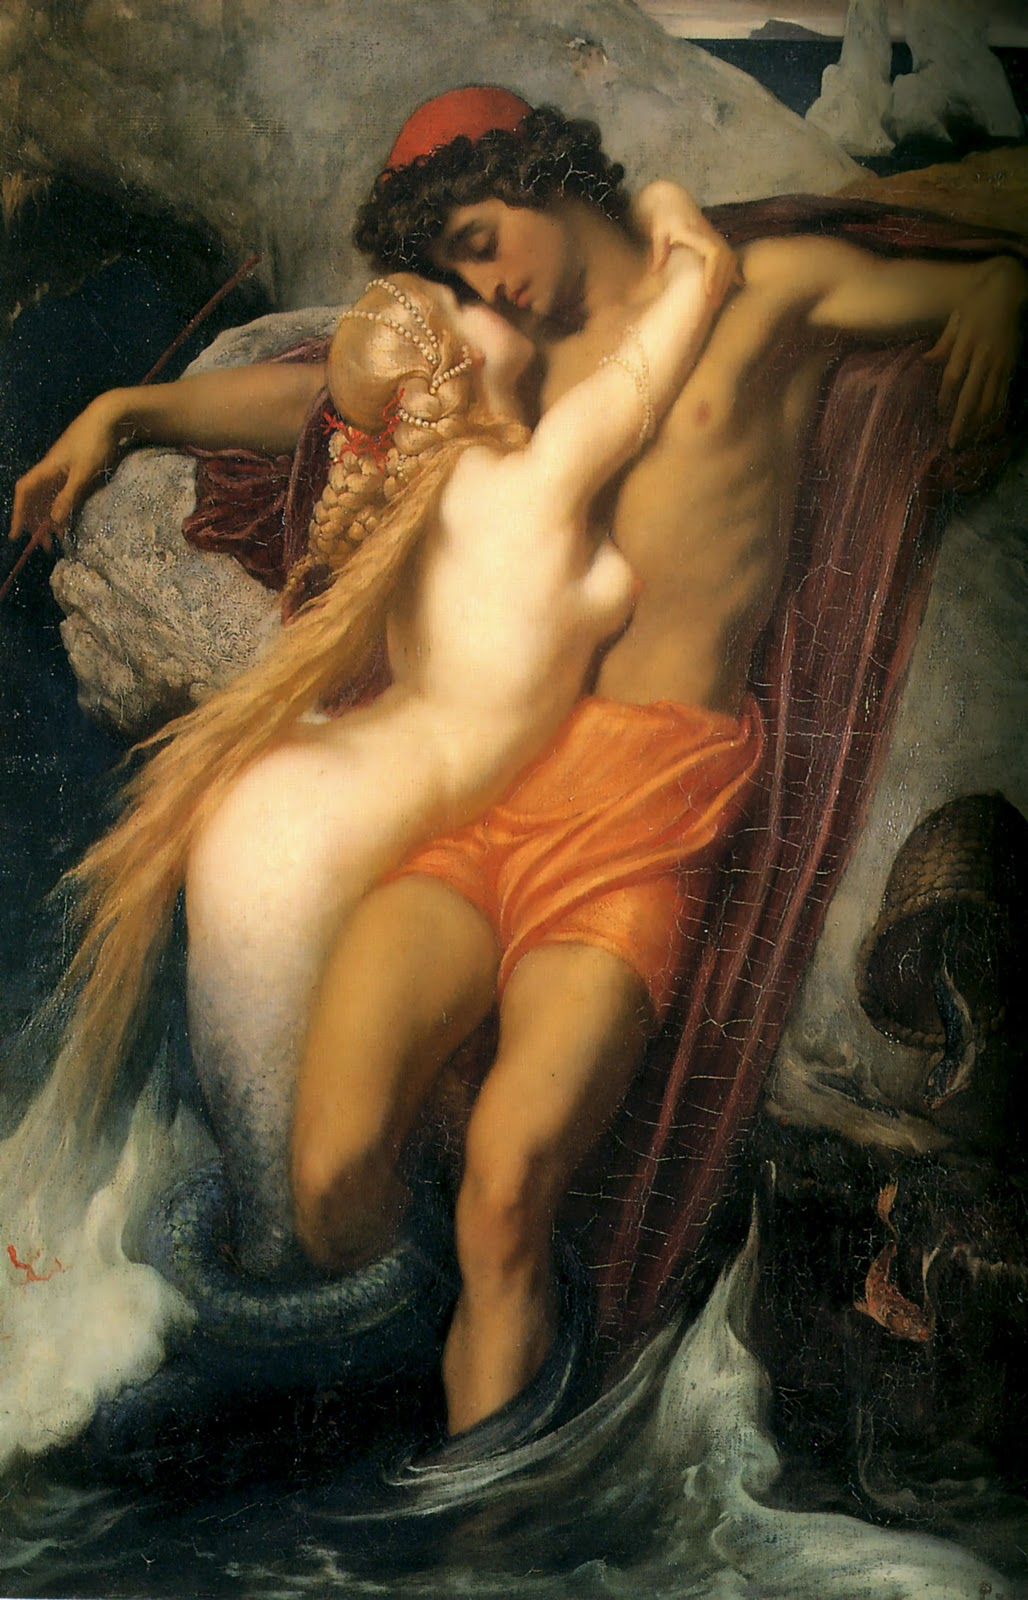 http://4.bp.blogspot.com/_udHjstC5-YM/TN72l-2Wj2I/AAAAAAAATSM/LORywUeKb08/s1600/Leighton-The_Fisherman_and_the_Syren-c._1856-1858%255B1%255D.jpg